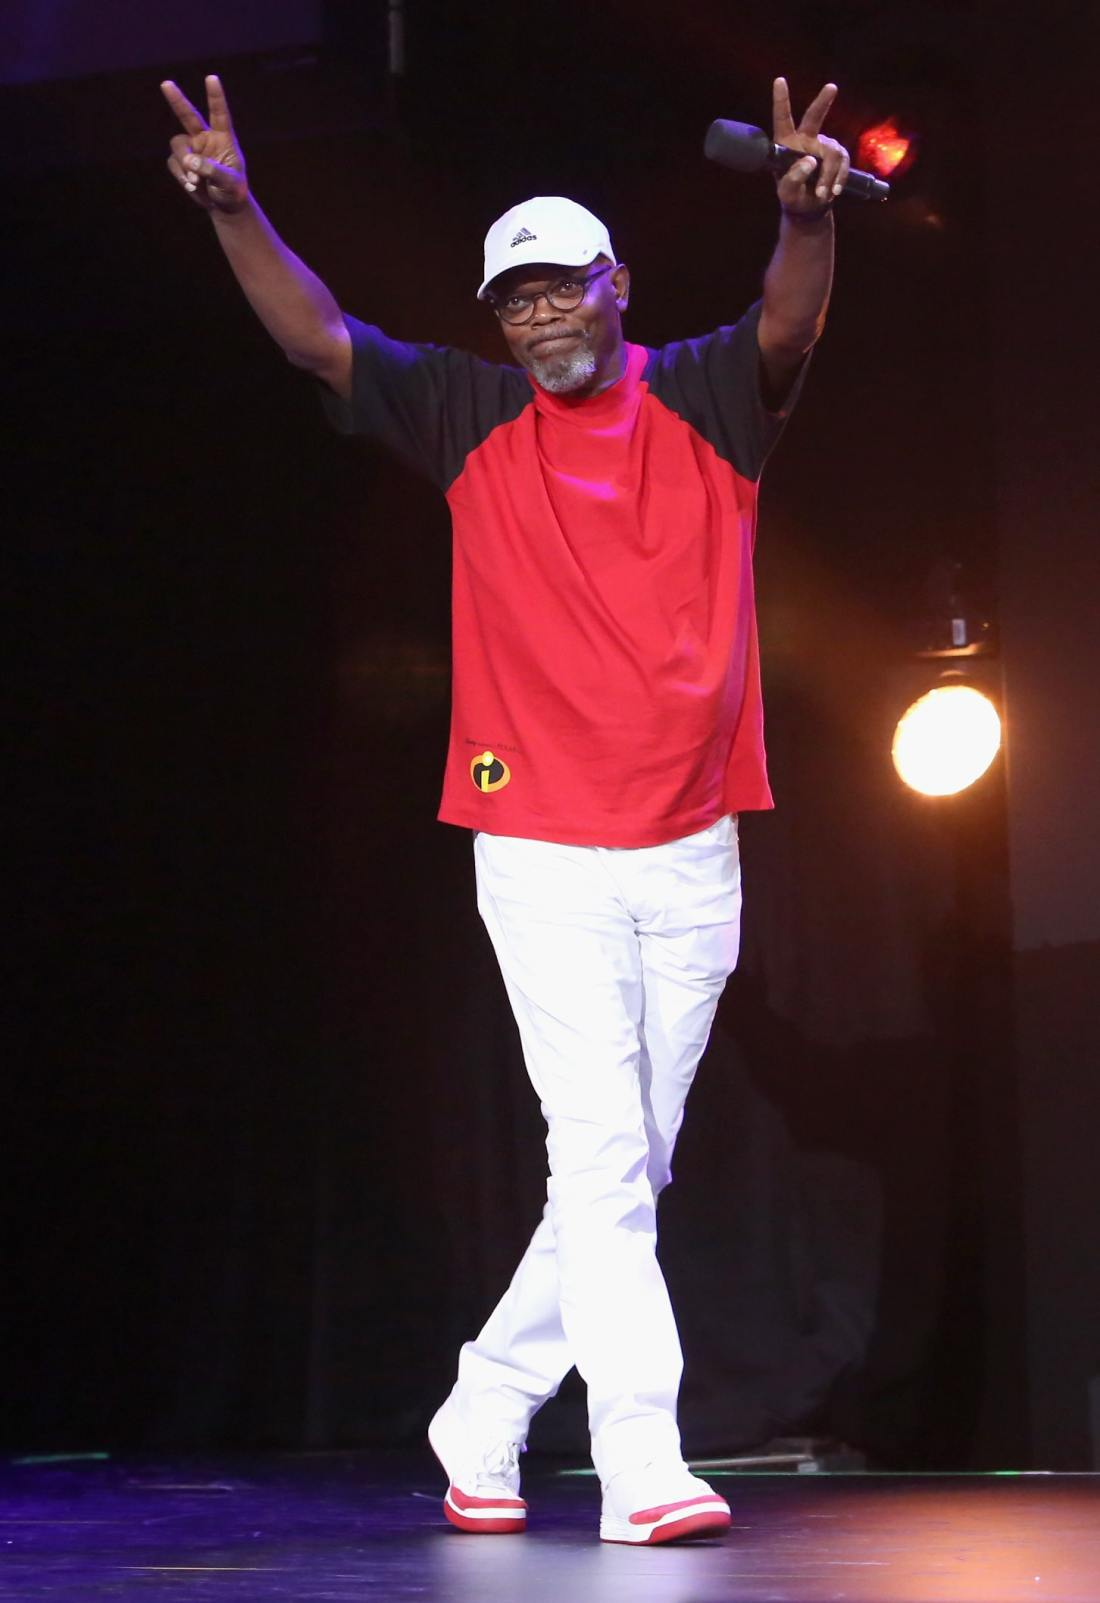 Actor Samuel L. Jackson of INCREDIBLES 2 took part today in the Walt Disney Studios animation presentation at Disney's D23 EXPO 2017 in Anaheim, Calif.